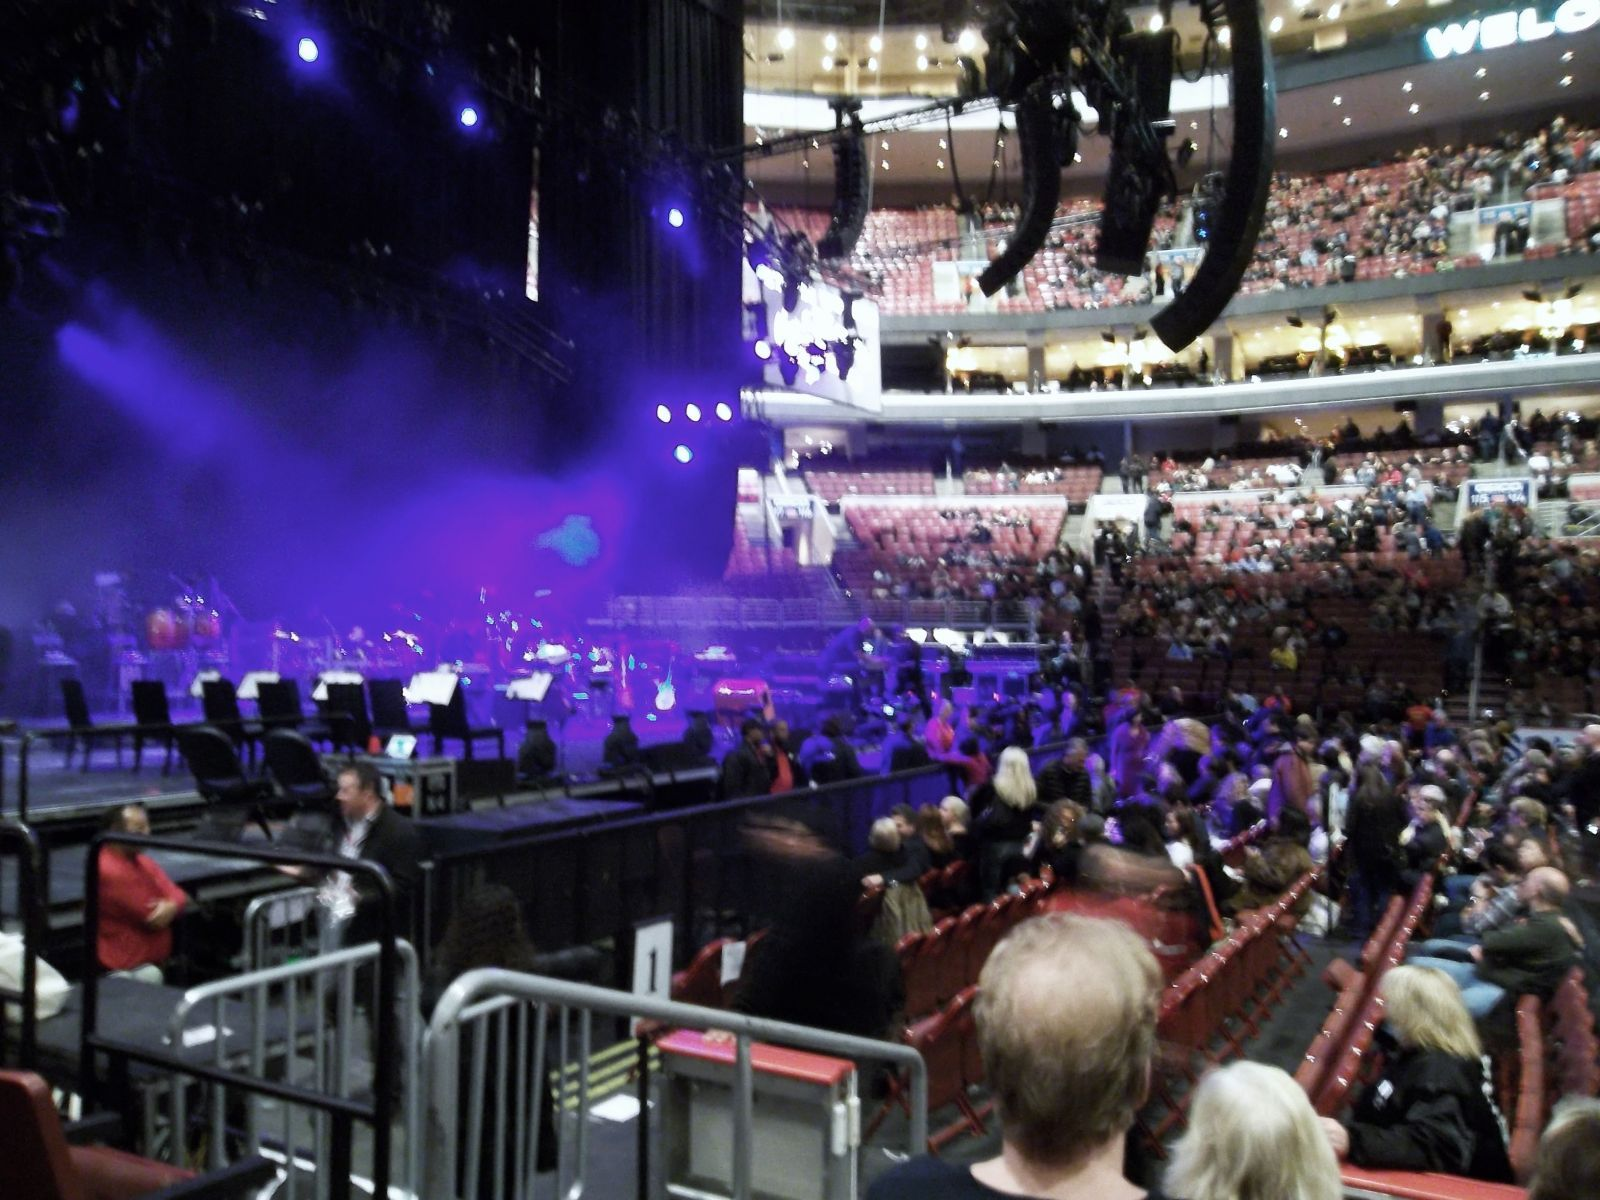 What are the best seats for the Elton John concert at Wells Fargo